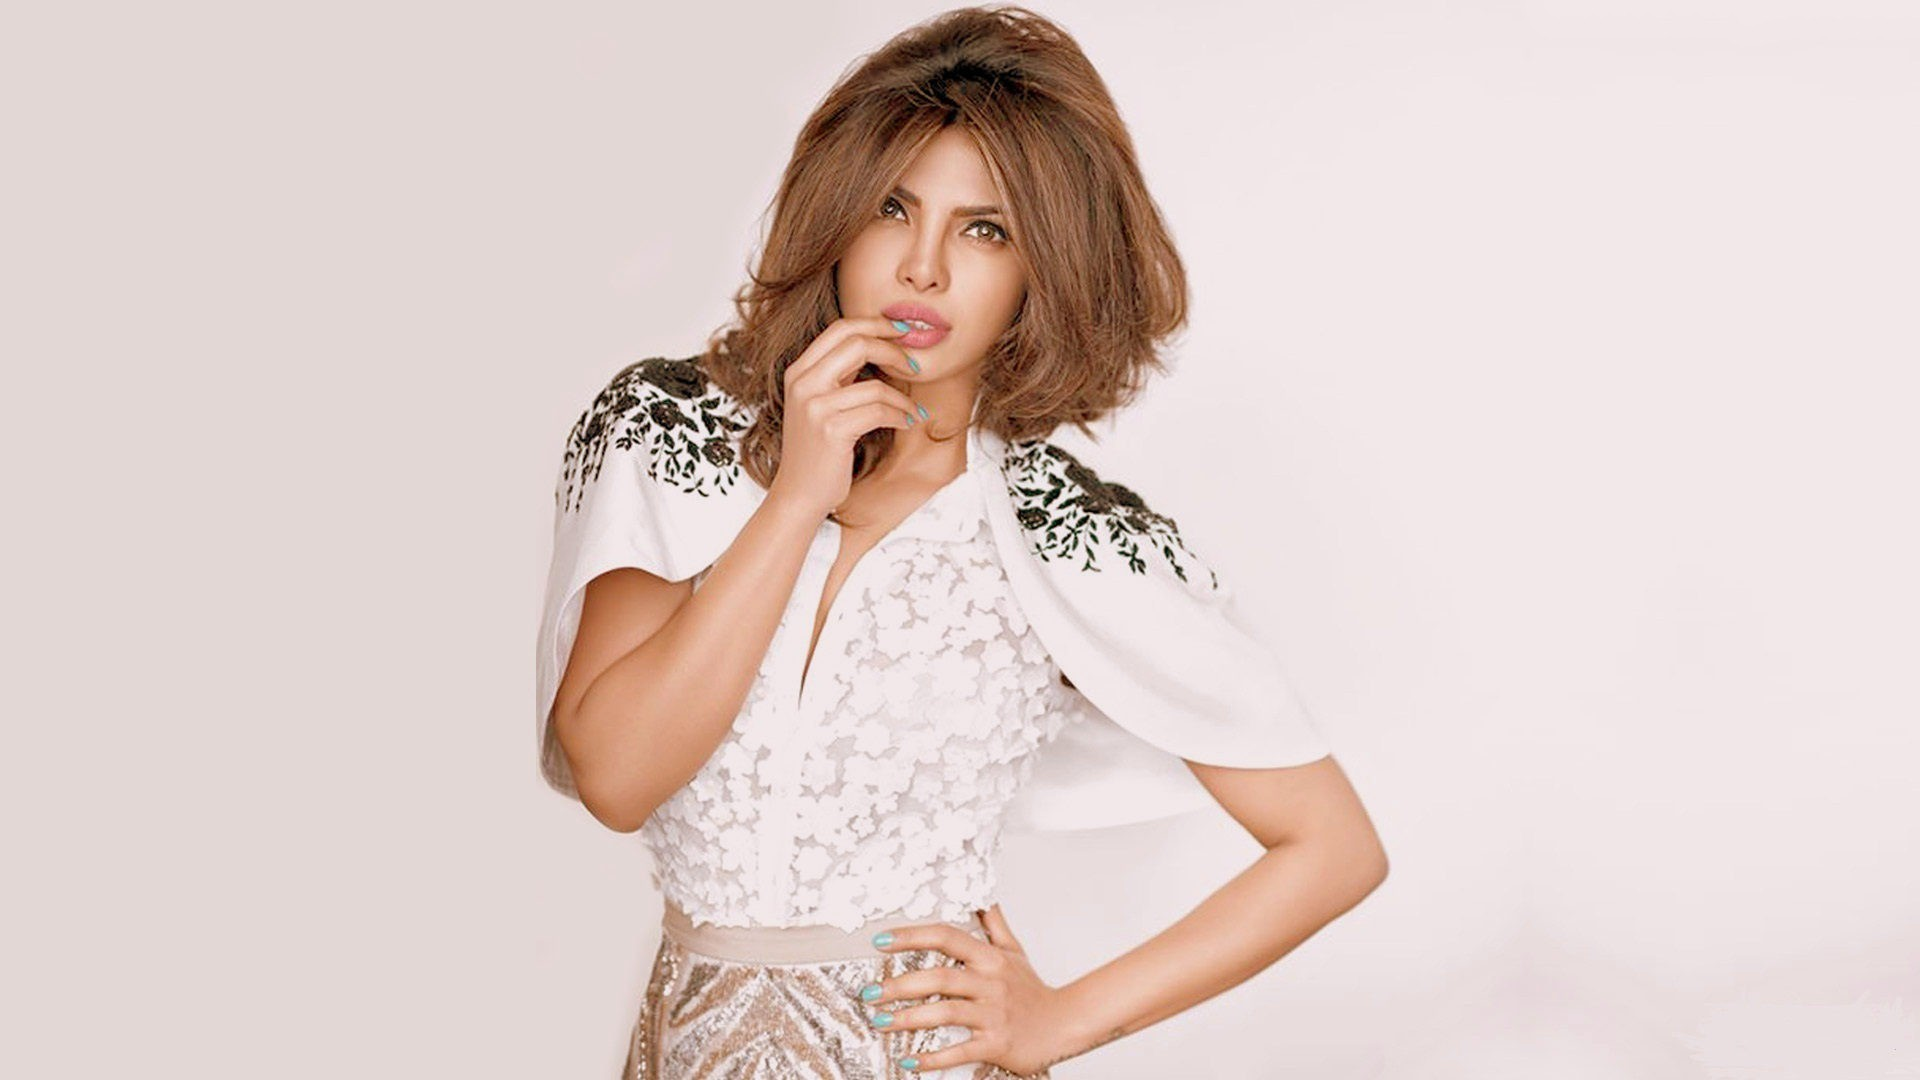 Priyanka Chopra Wallpaper HD